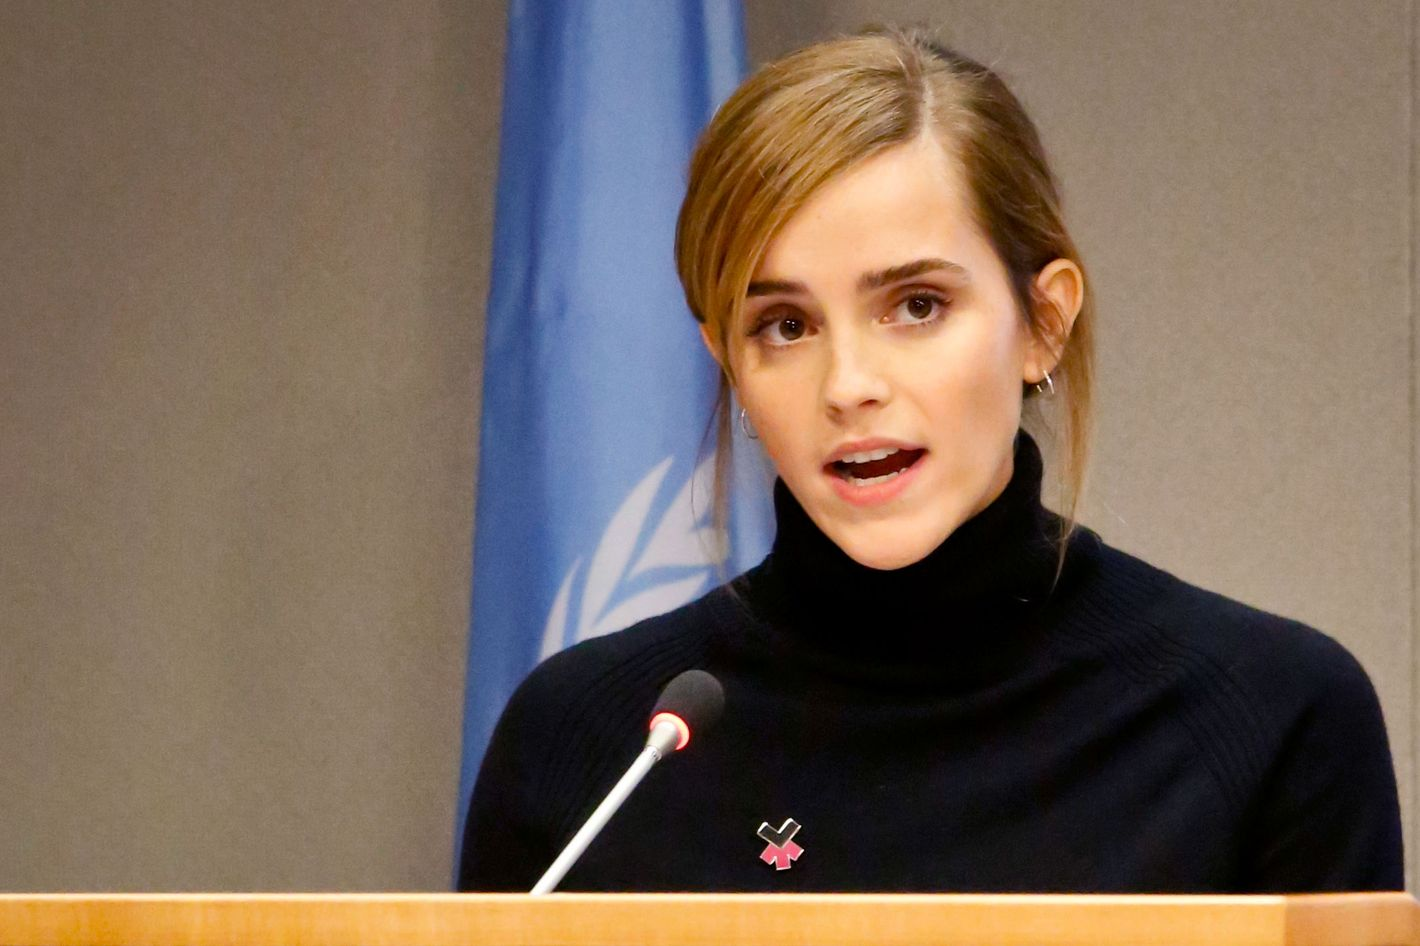 emma watson calls for campus safety in powerful un speech